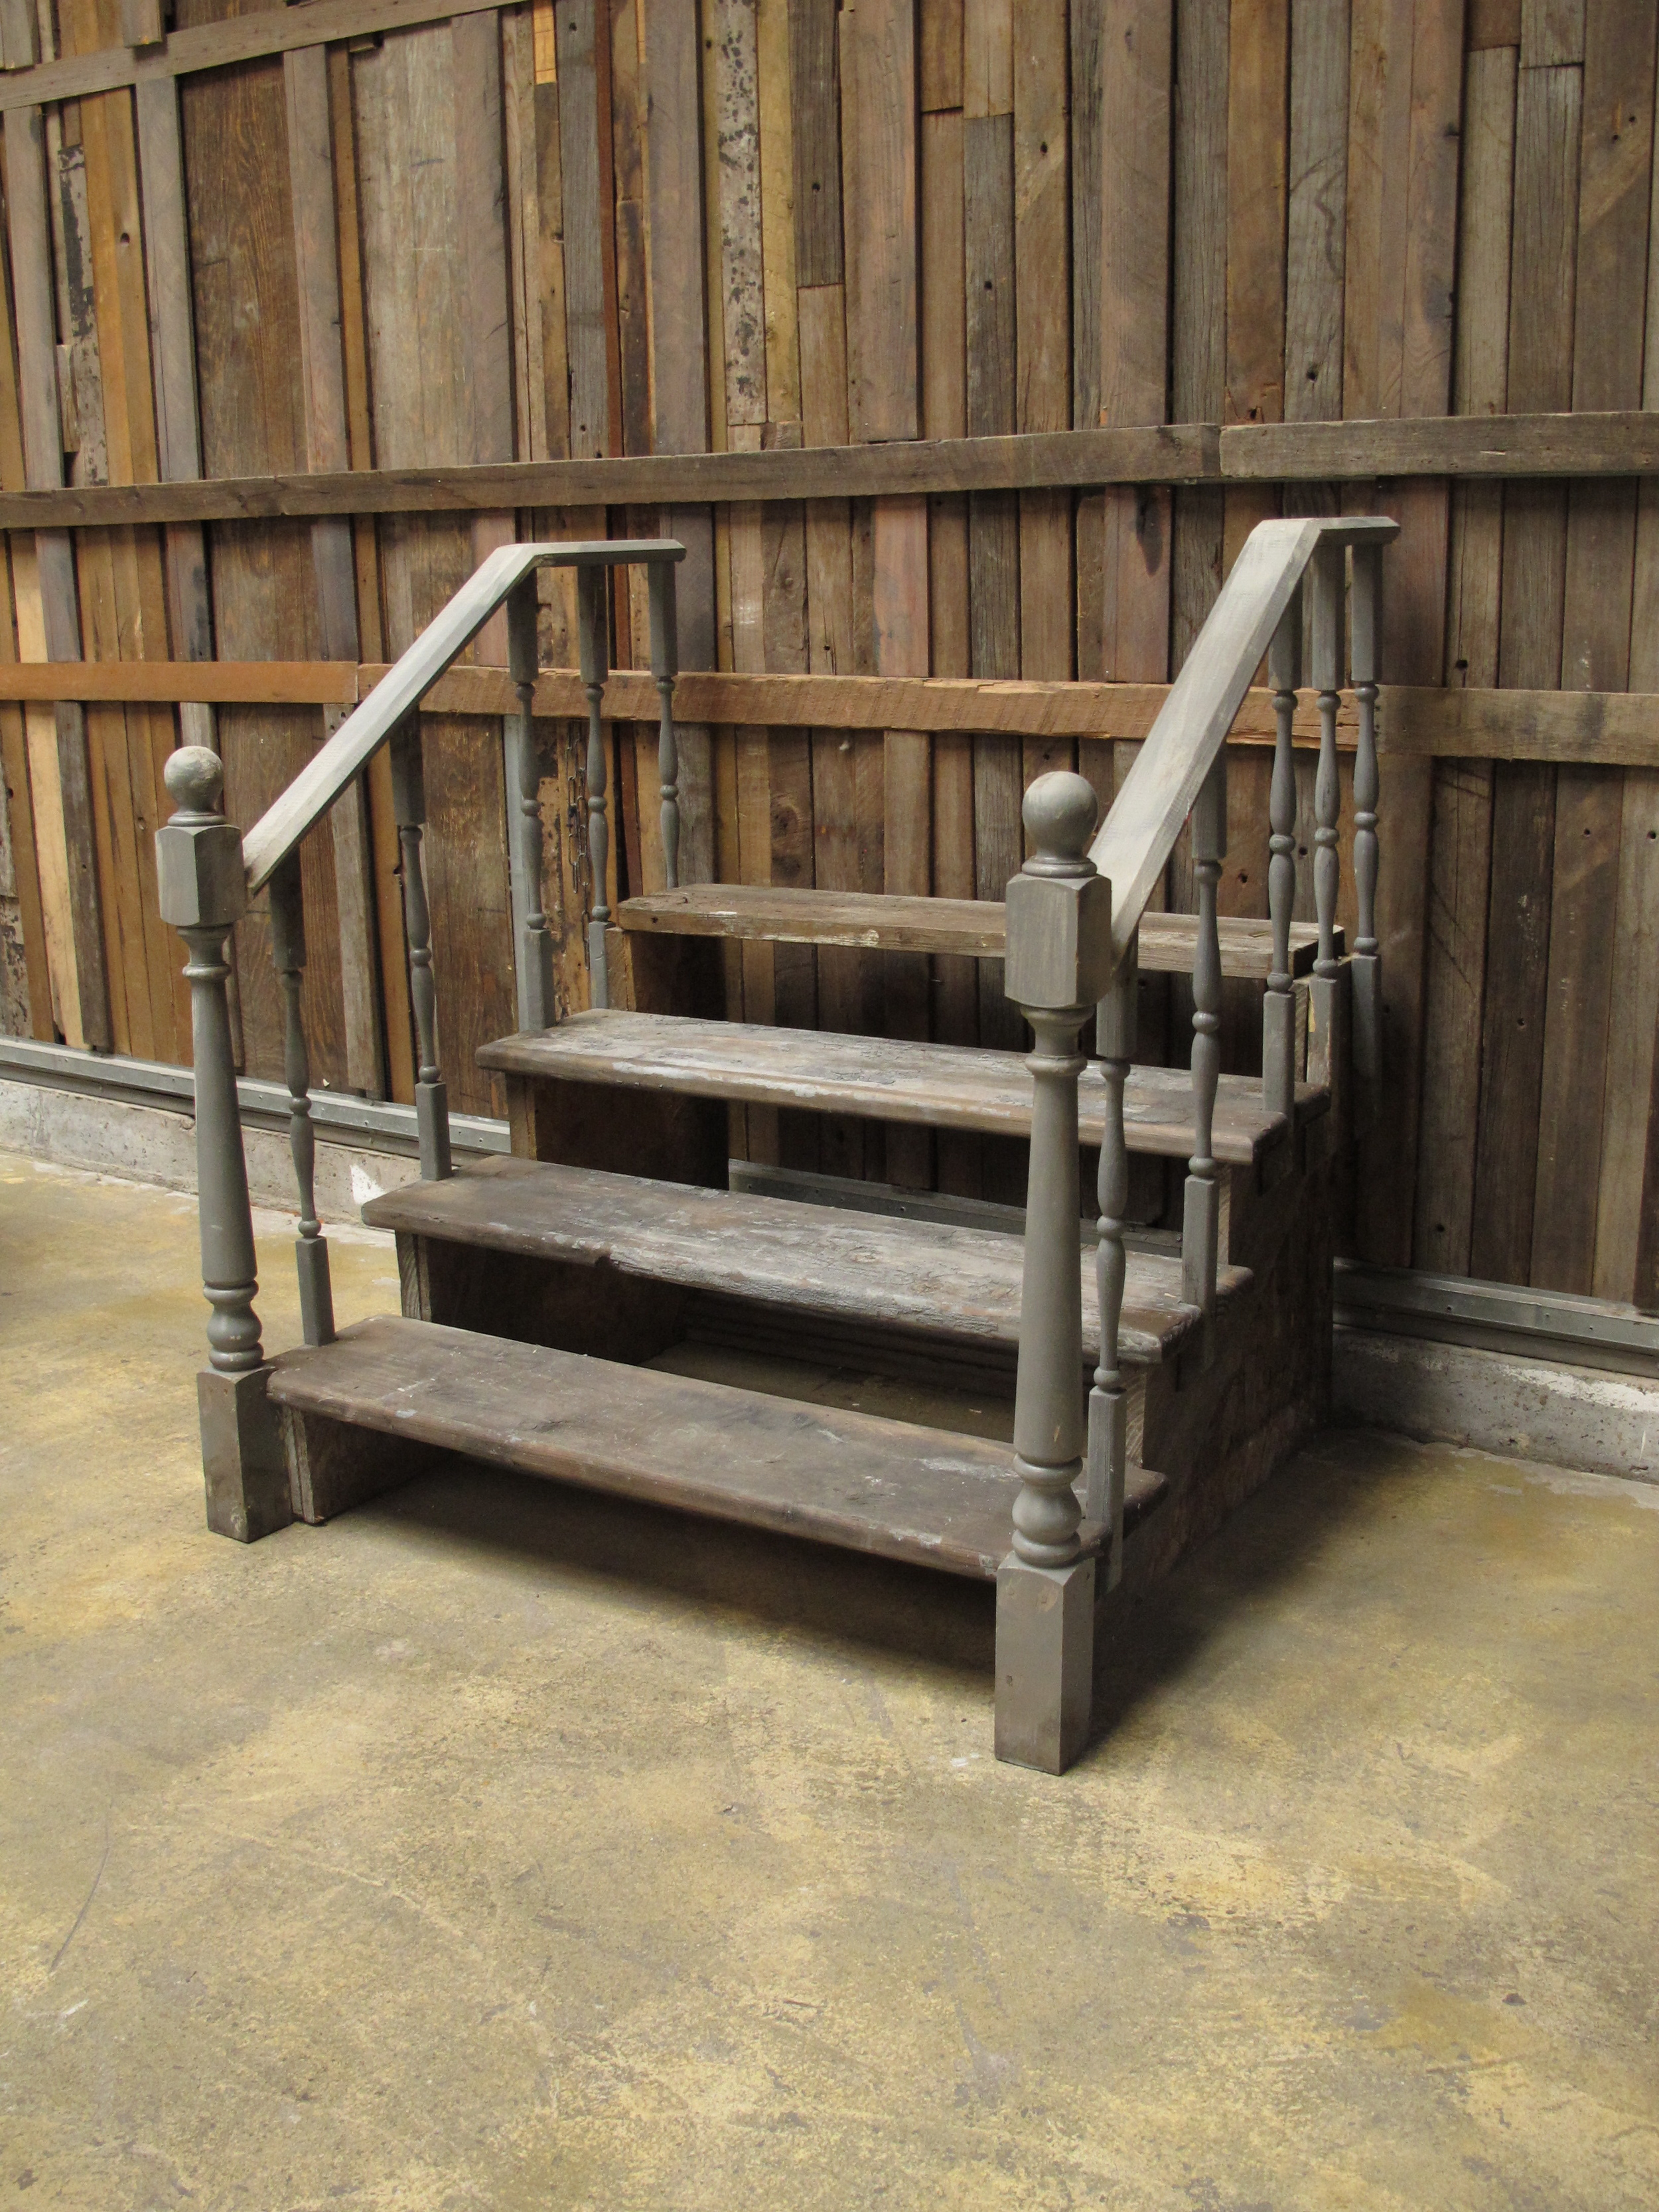 Grey 4-Step 'Stoop' Stairs with Railings $225